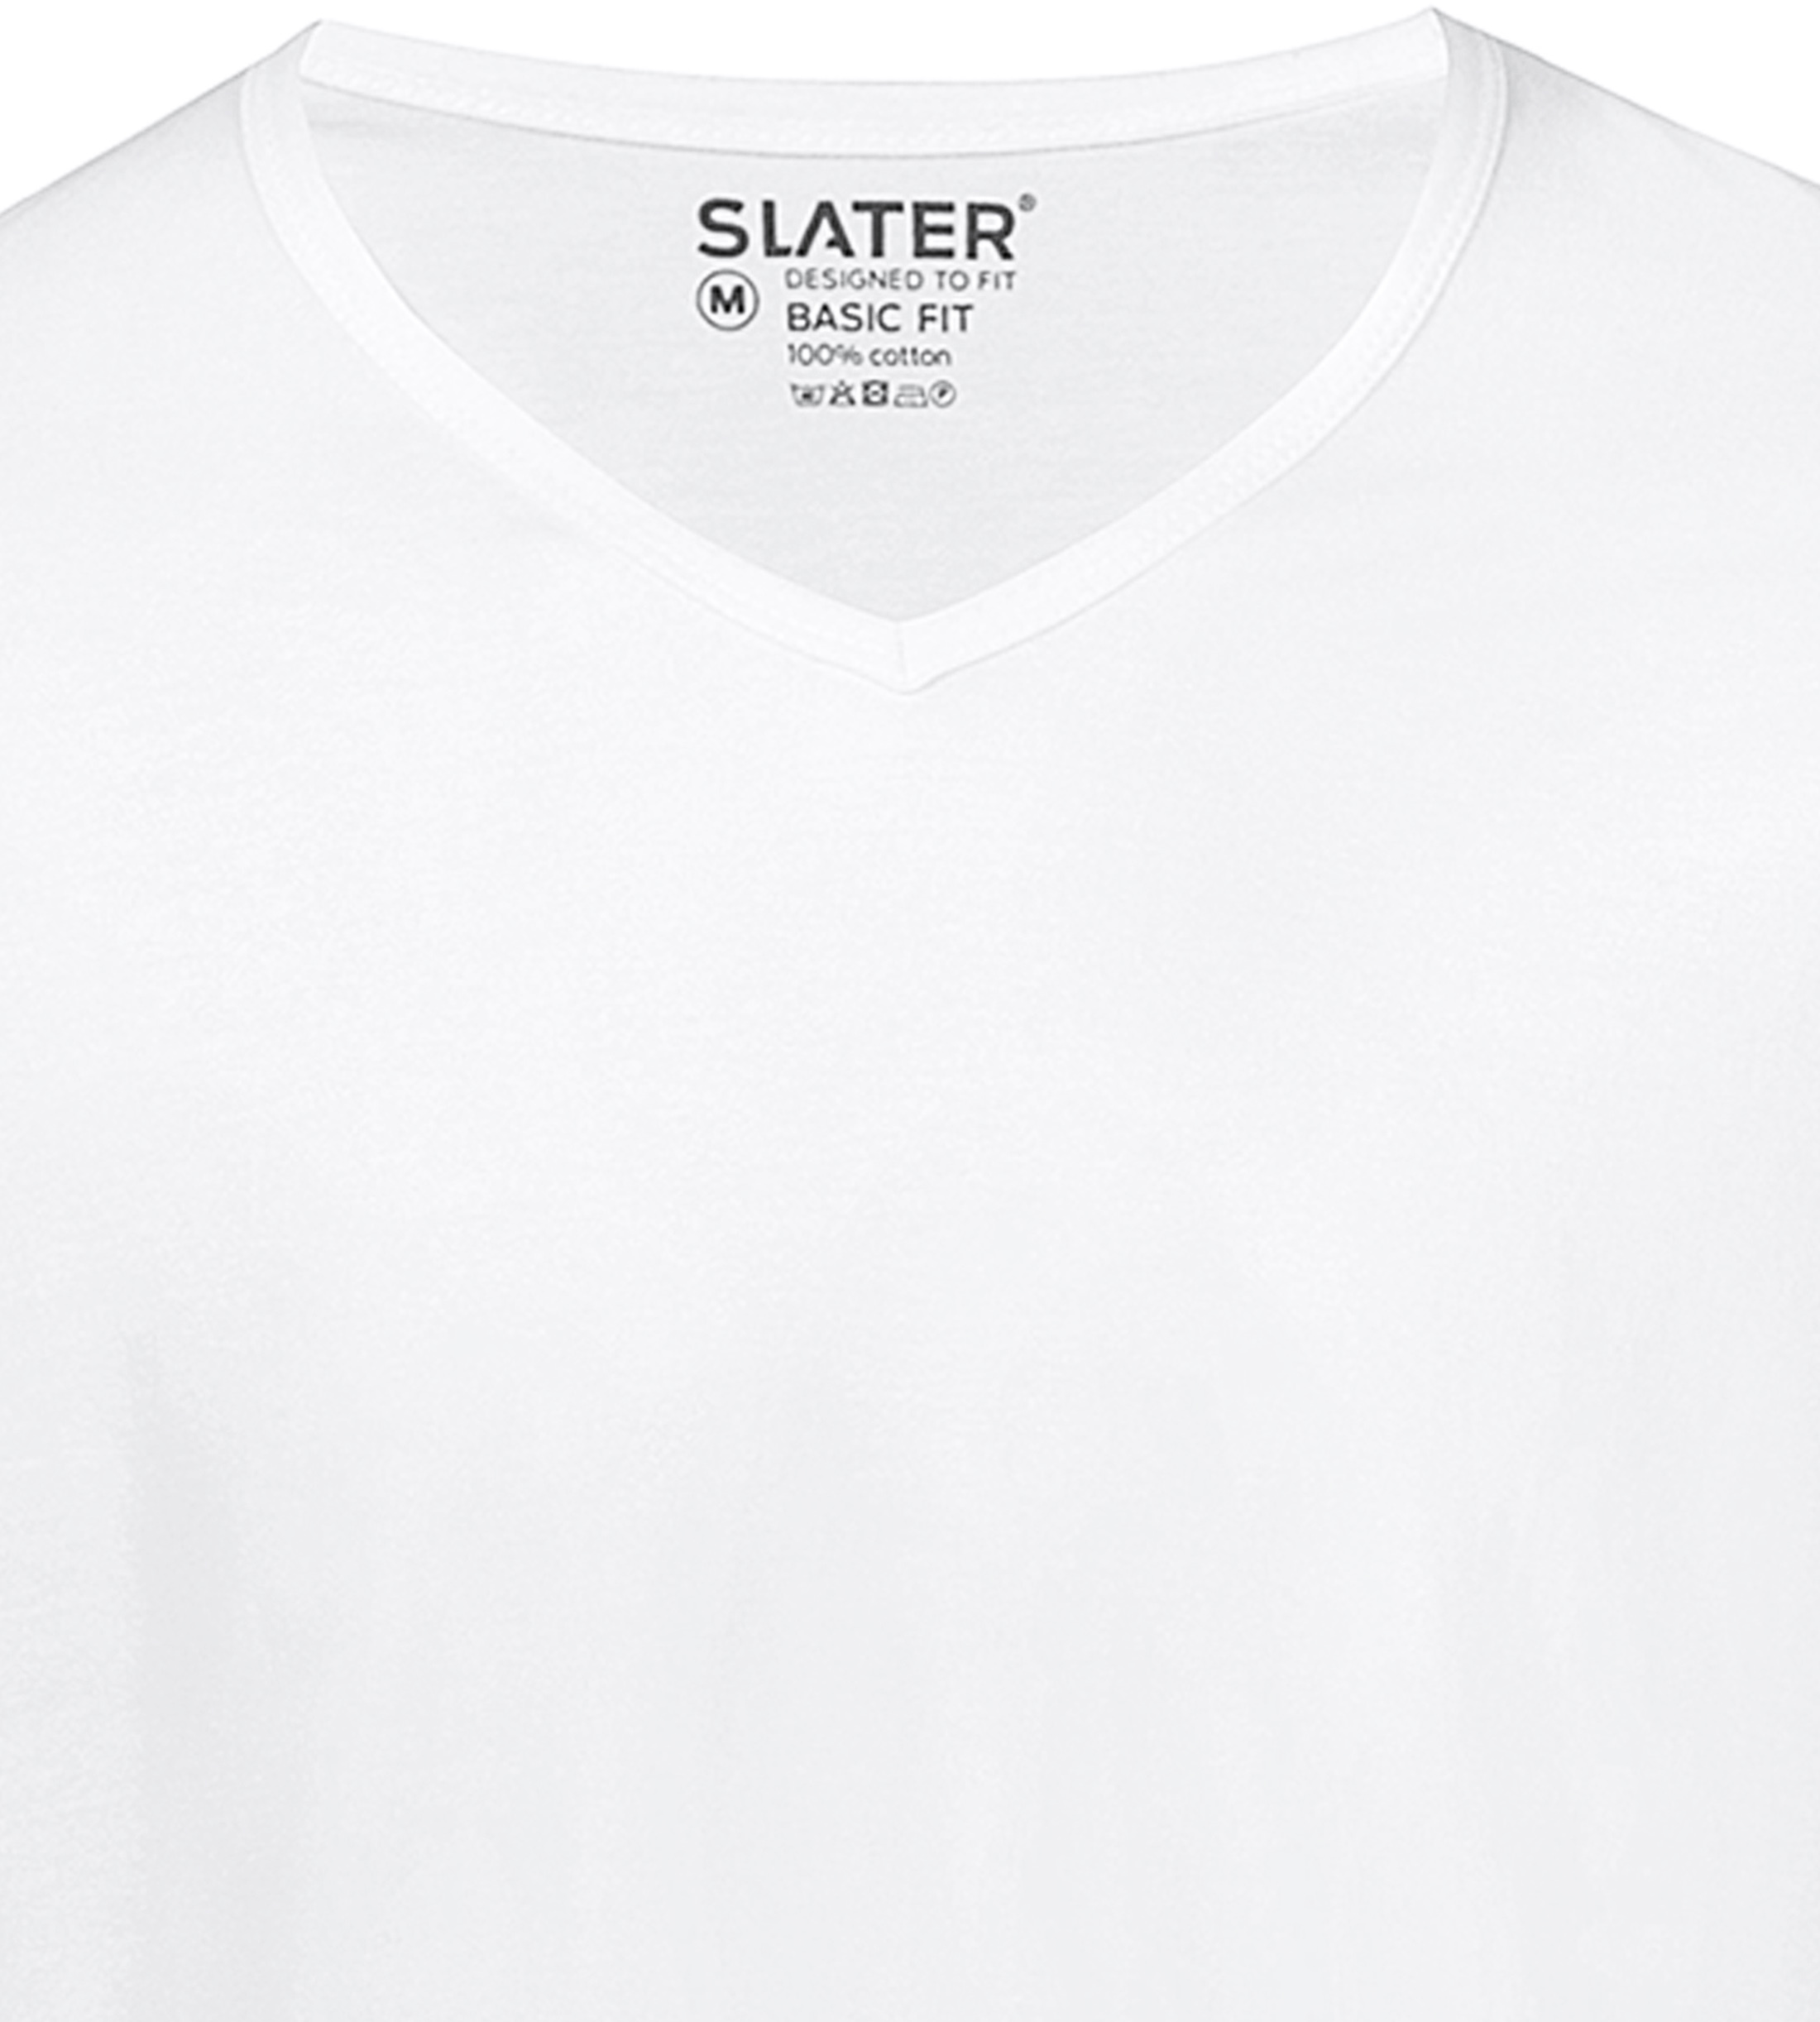 Slater 2-pack Basic Fit T-shirt V-neck White foto 1